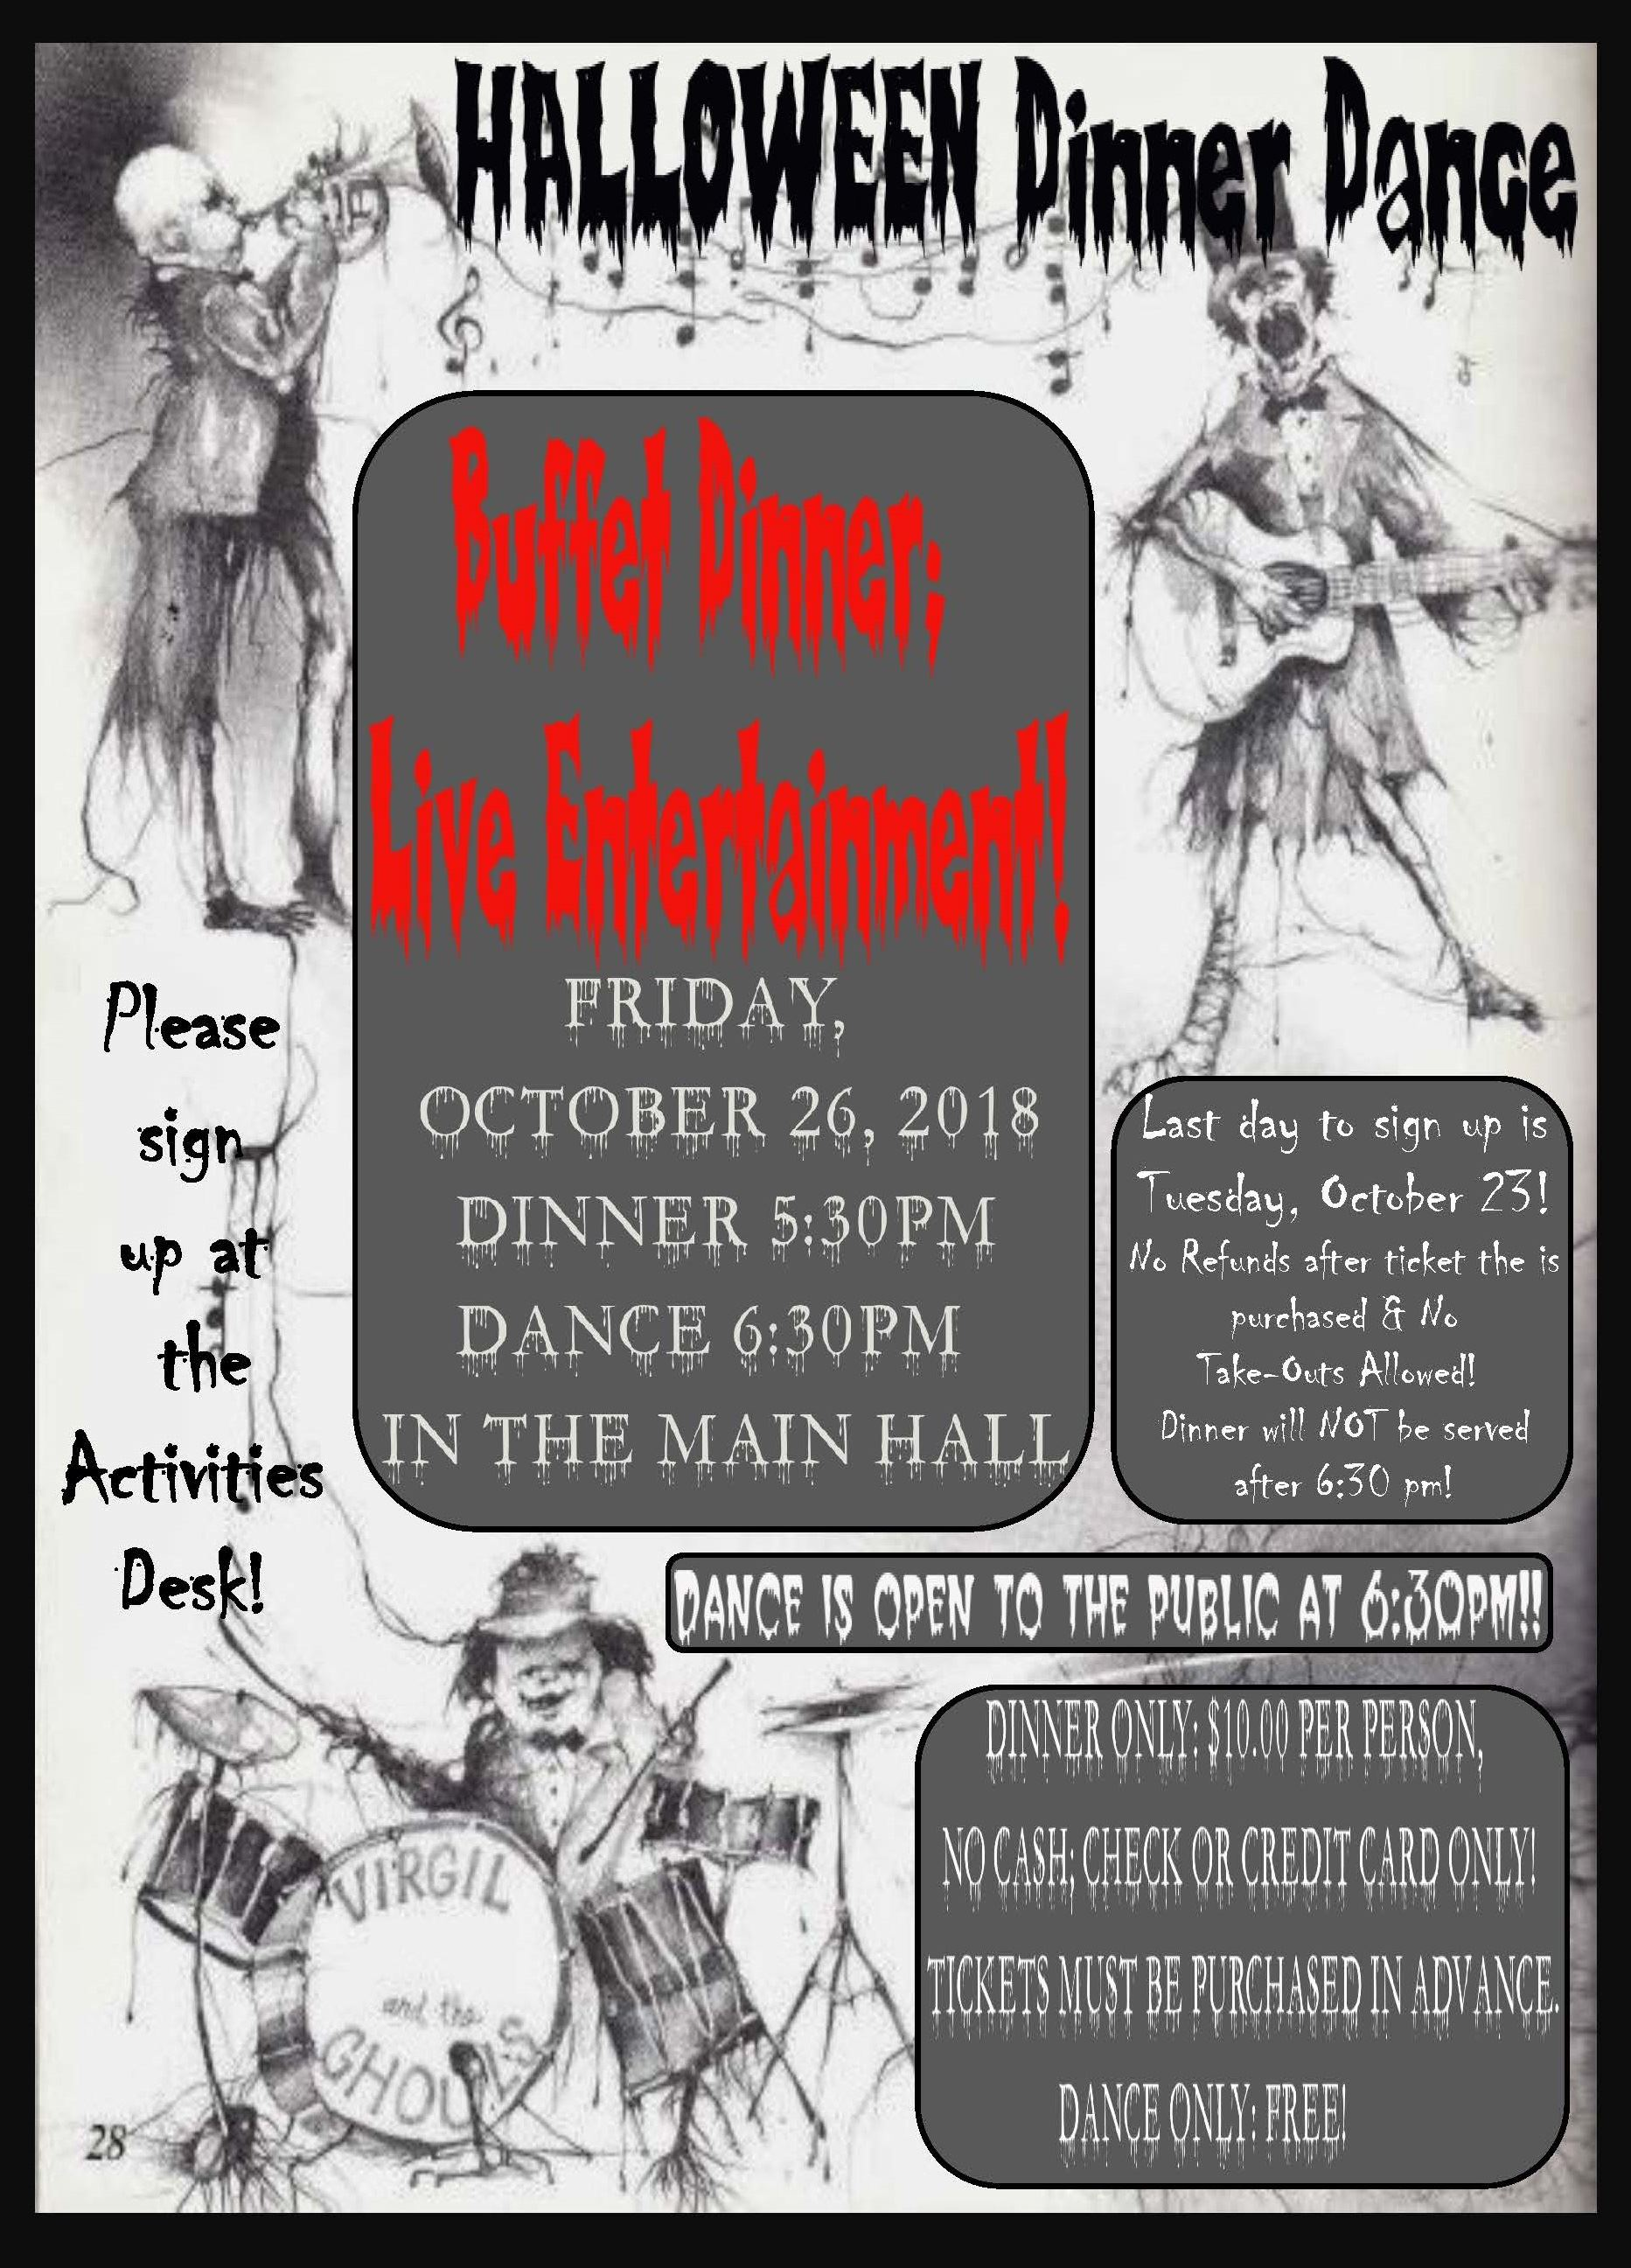 HALLOWEEN DINNER DANCE POSTER english only 10-26-18